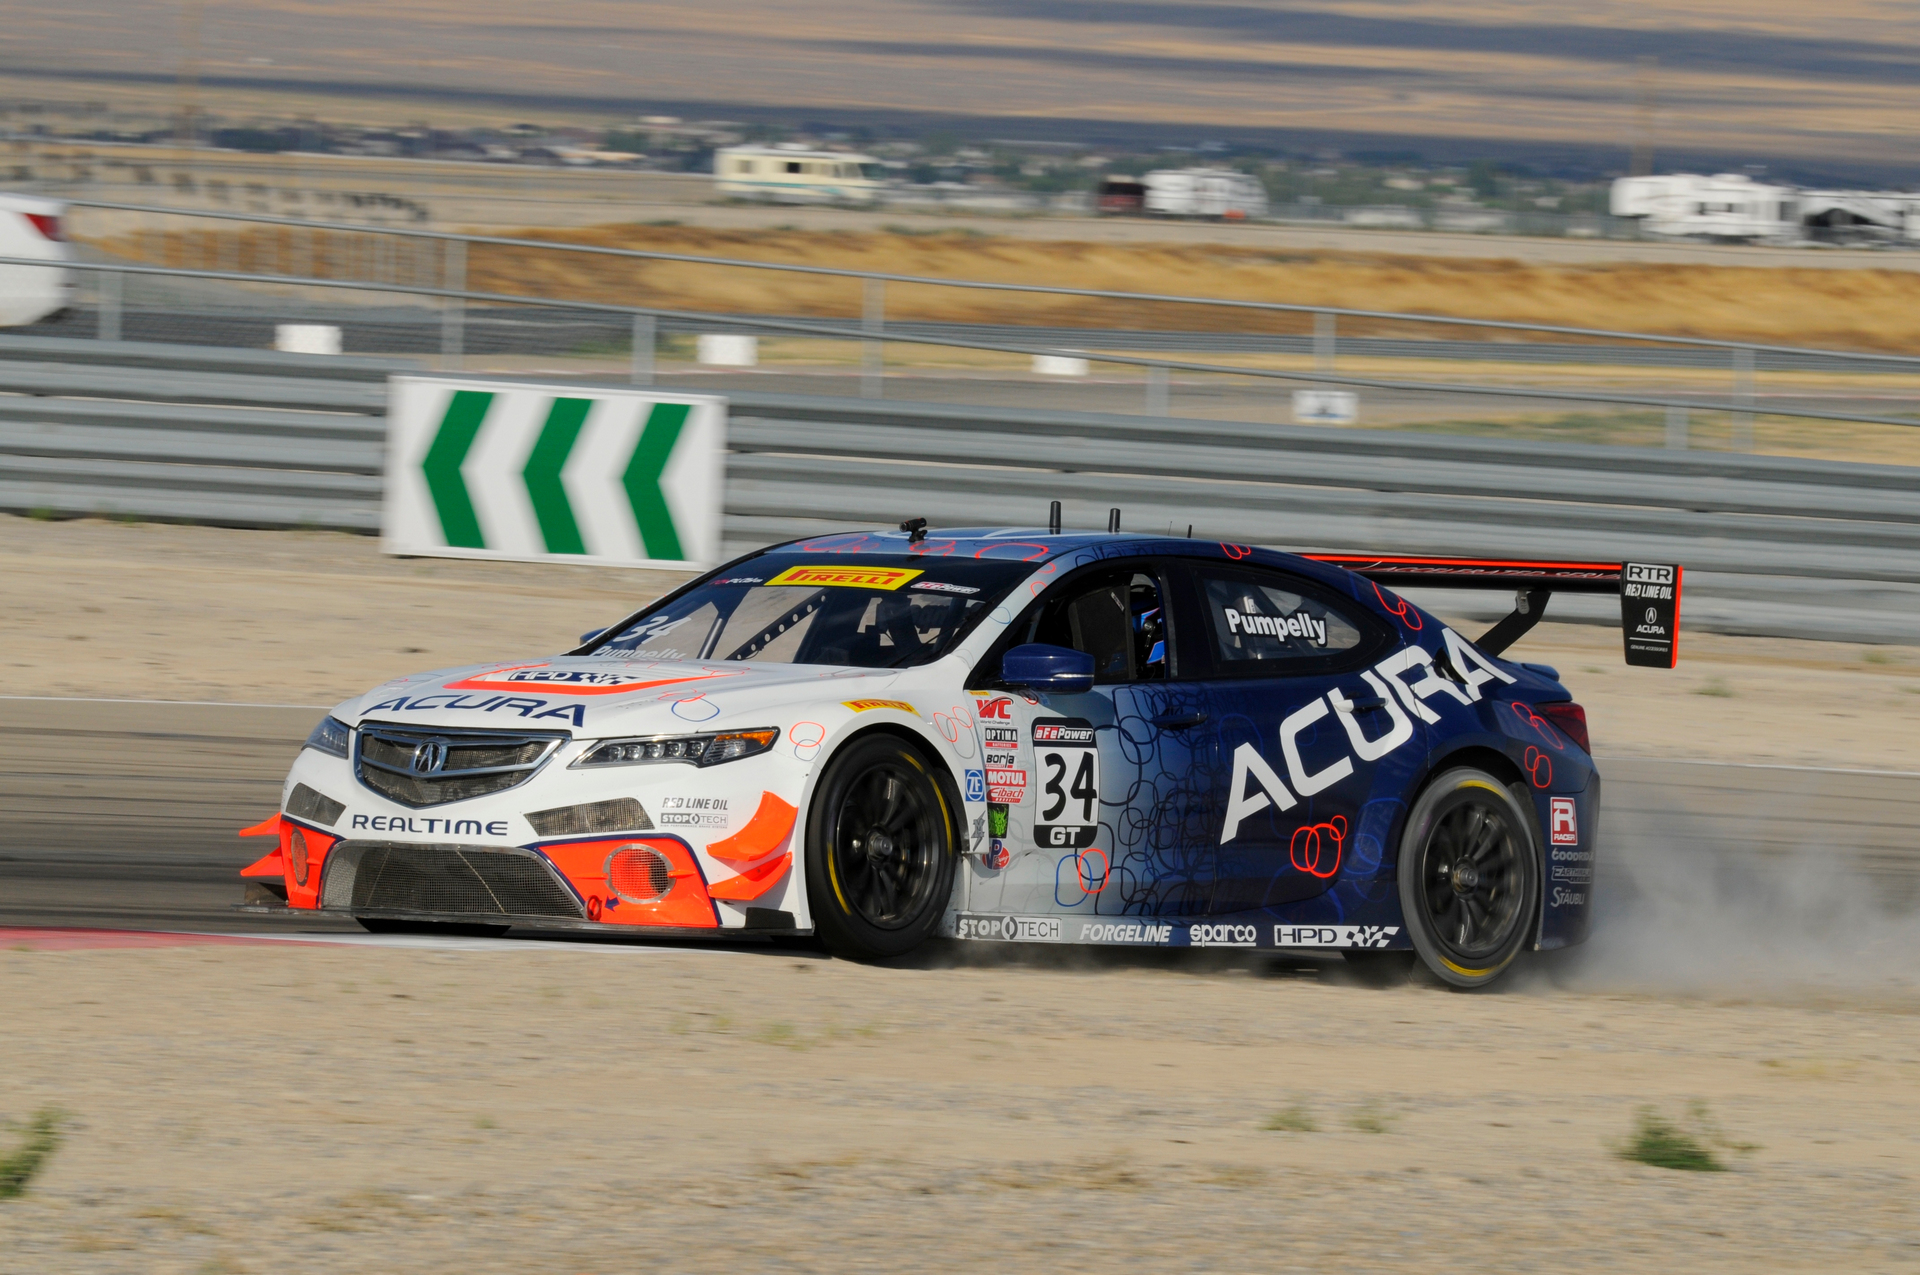 Ryan Eversley finished fourth in his RealTime Racing Acura TLX GT in Saturday's Pirelli World Challenge race at Utah Motorsports Campus © Honda Motor Co., Ltd.